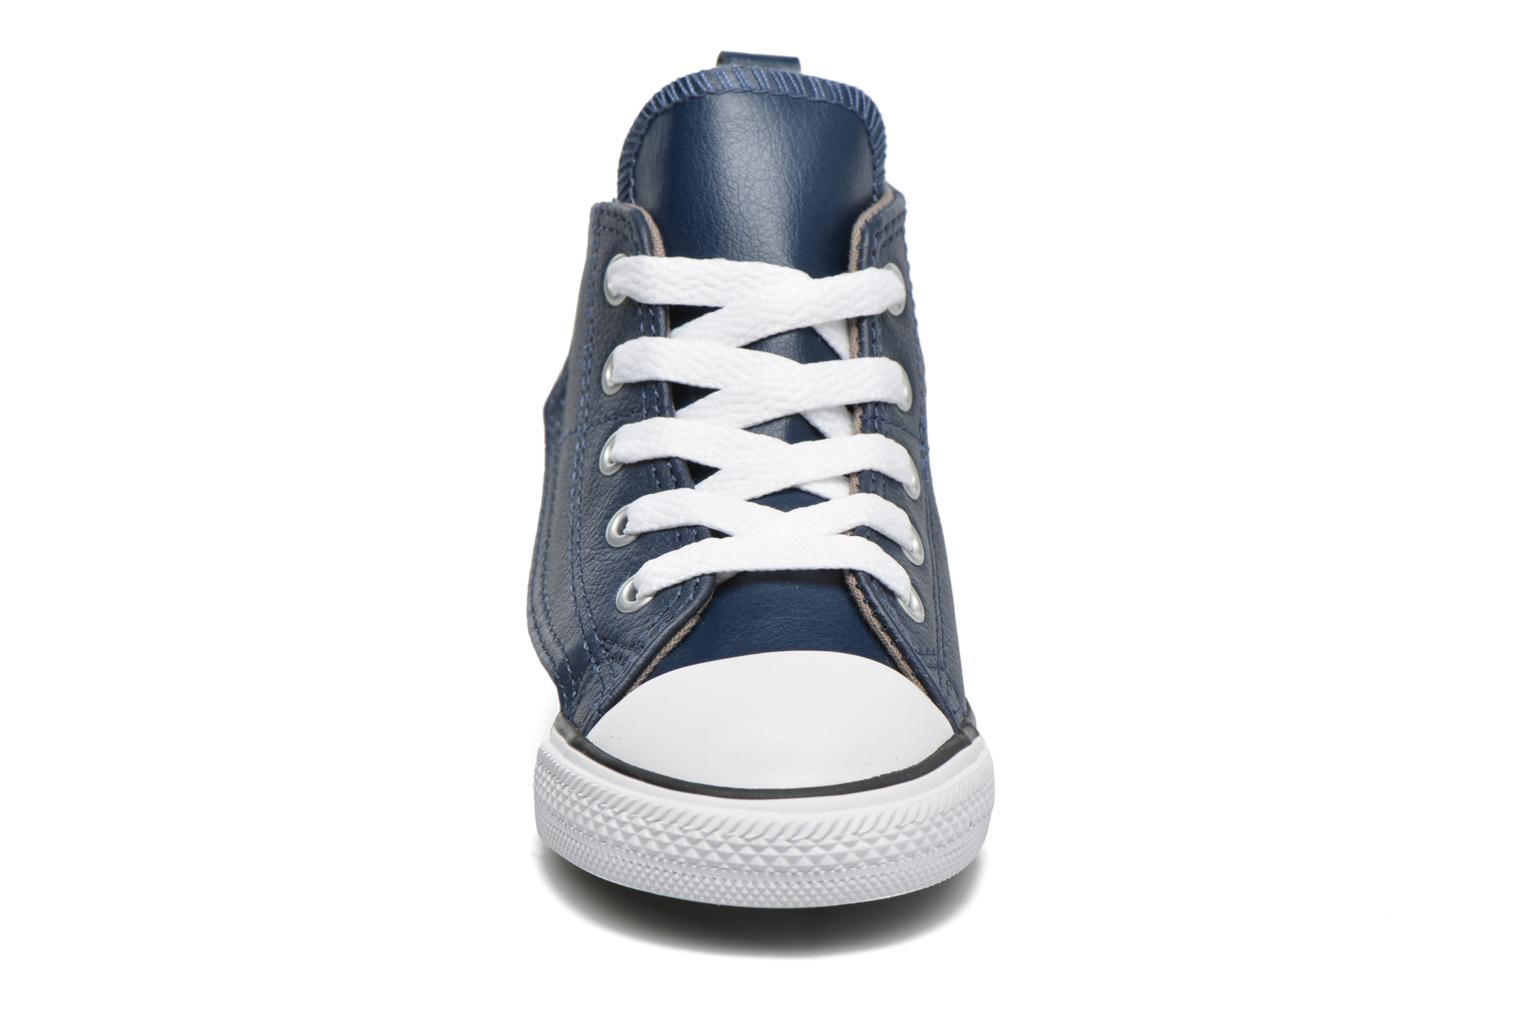 Chuck Taylor All Star Simple Step Hi Navy/Malt/White